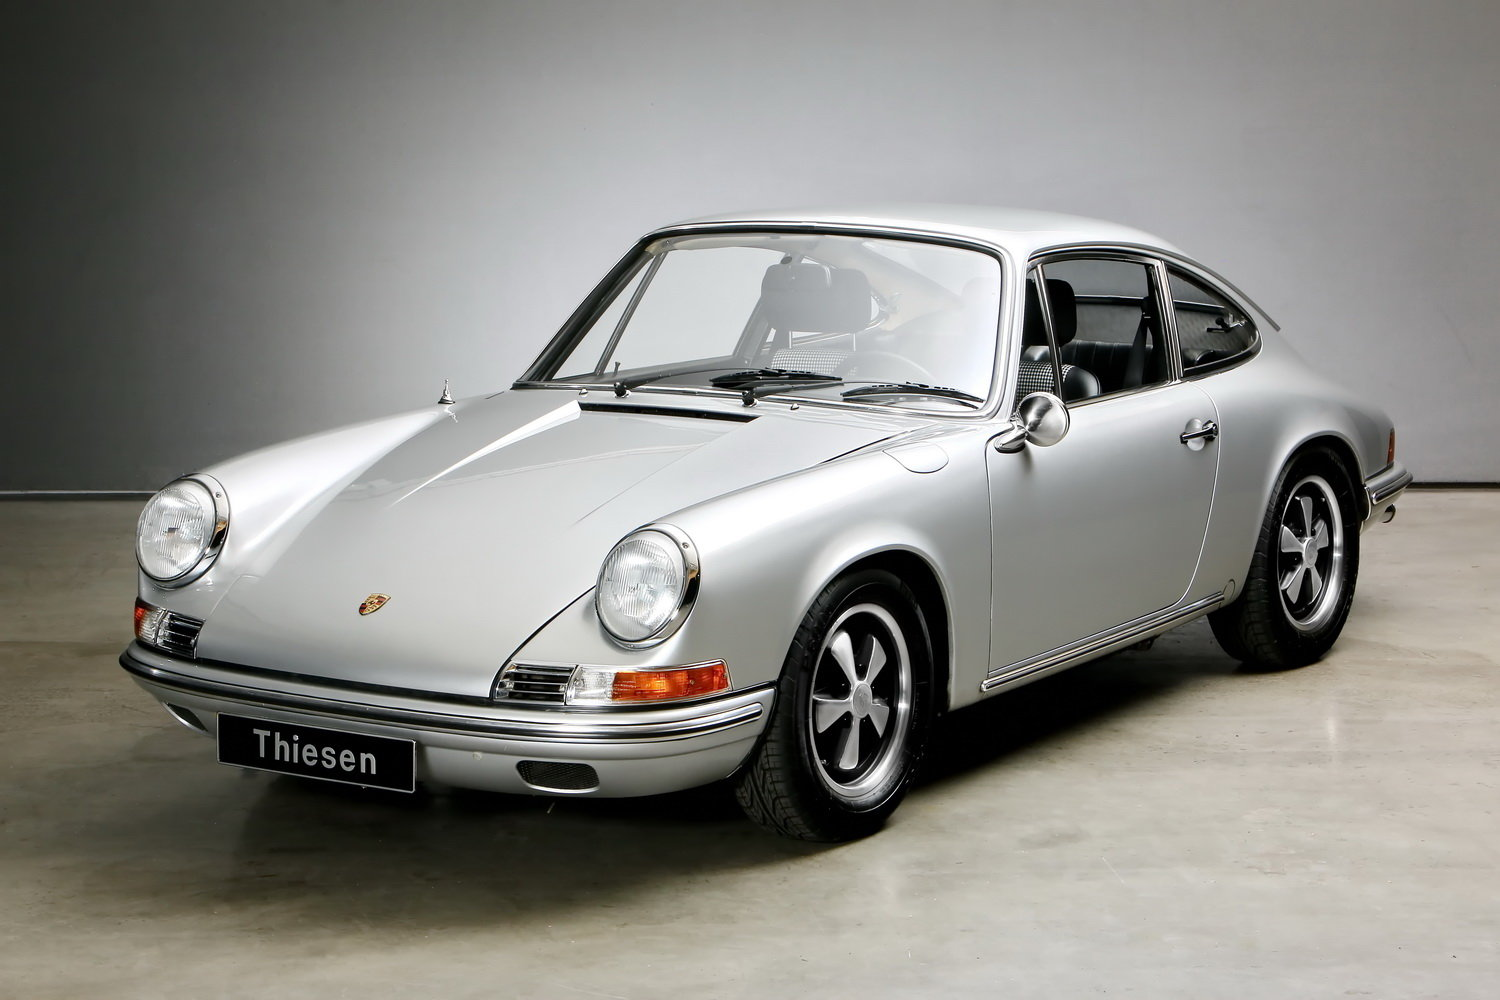 1970 911T 2.2 Ltr. Coup - Individualumbau - For Sale (picture 1 of 12)